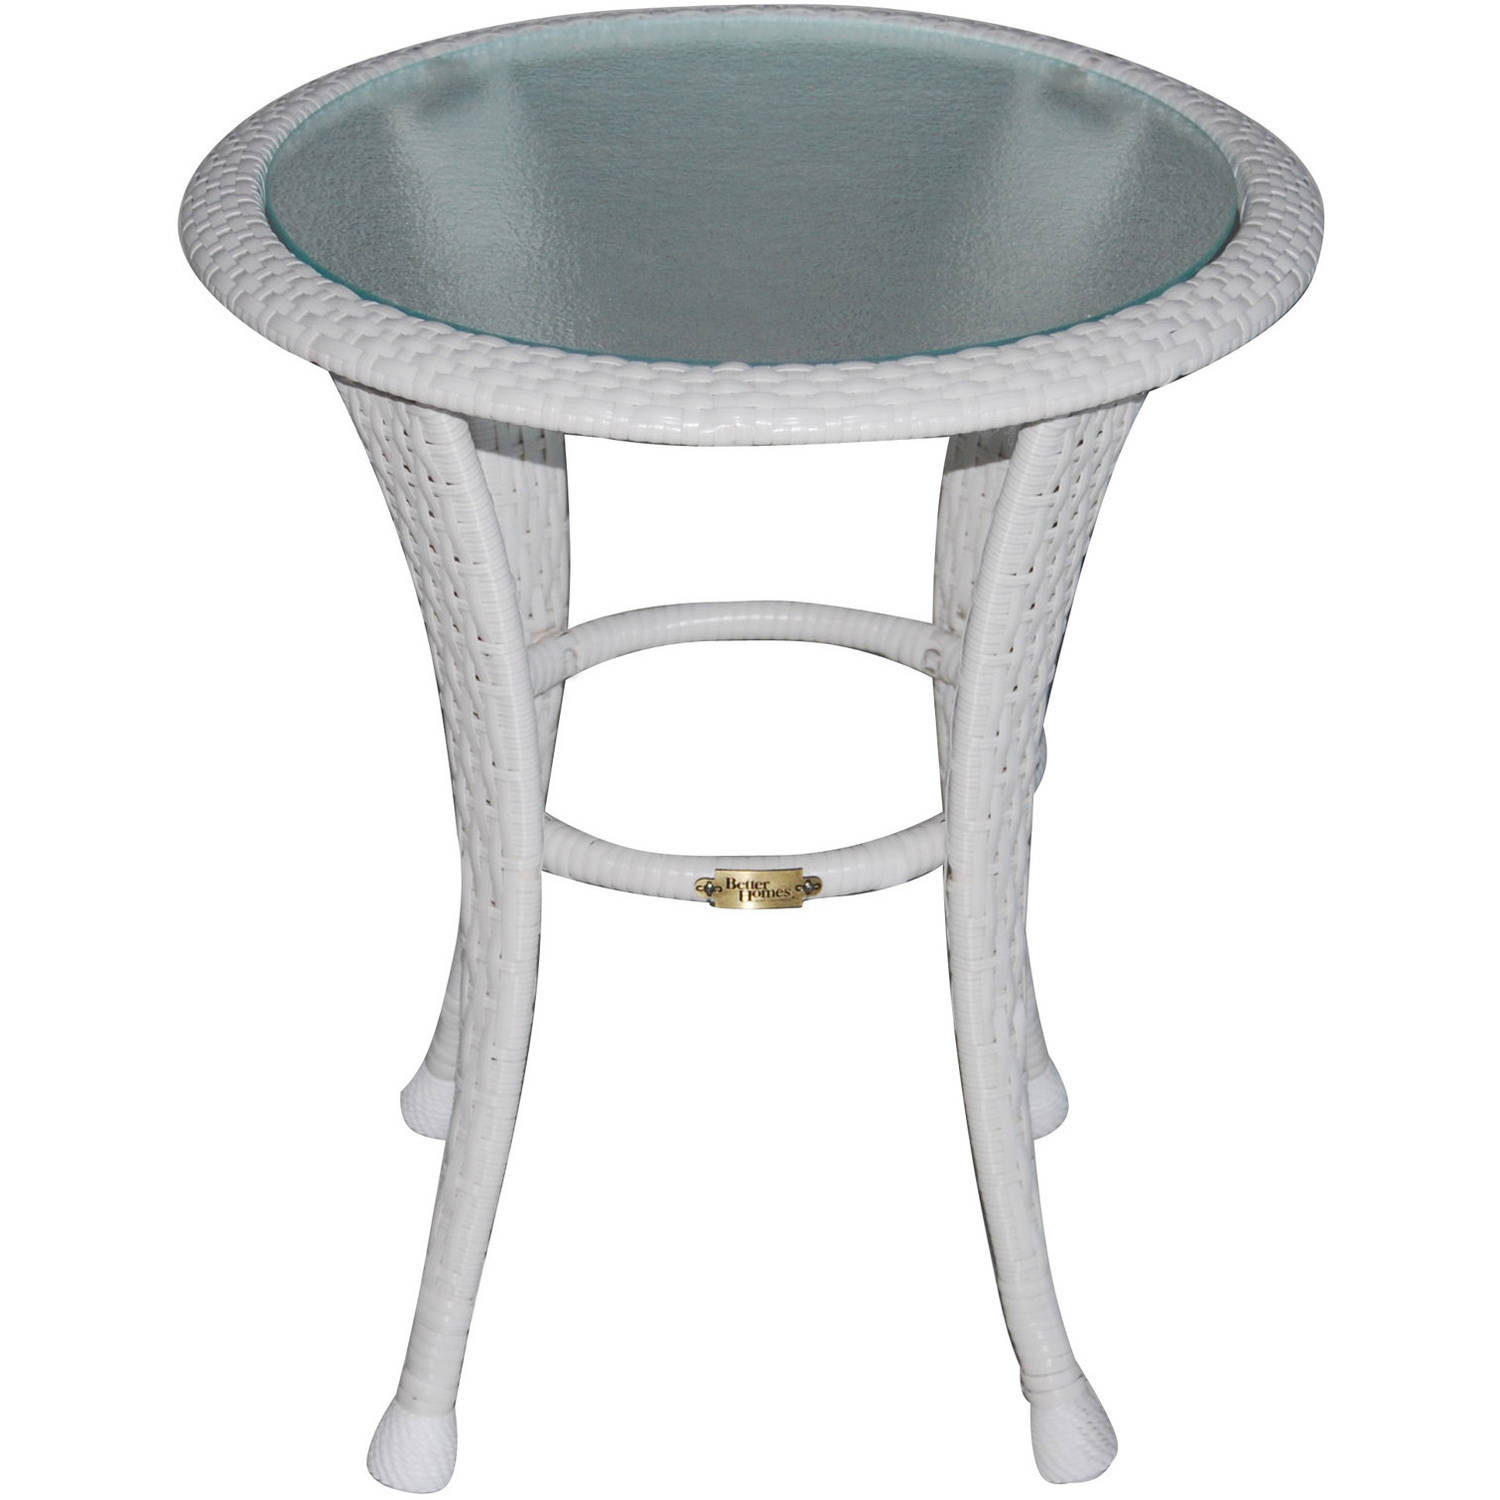 interior glass patio end table furniture side small outdoor and chairs storage red metal wicker tables accent full size round plastic ethan allen vintage diy dining runner inch